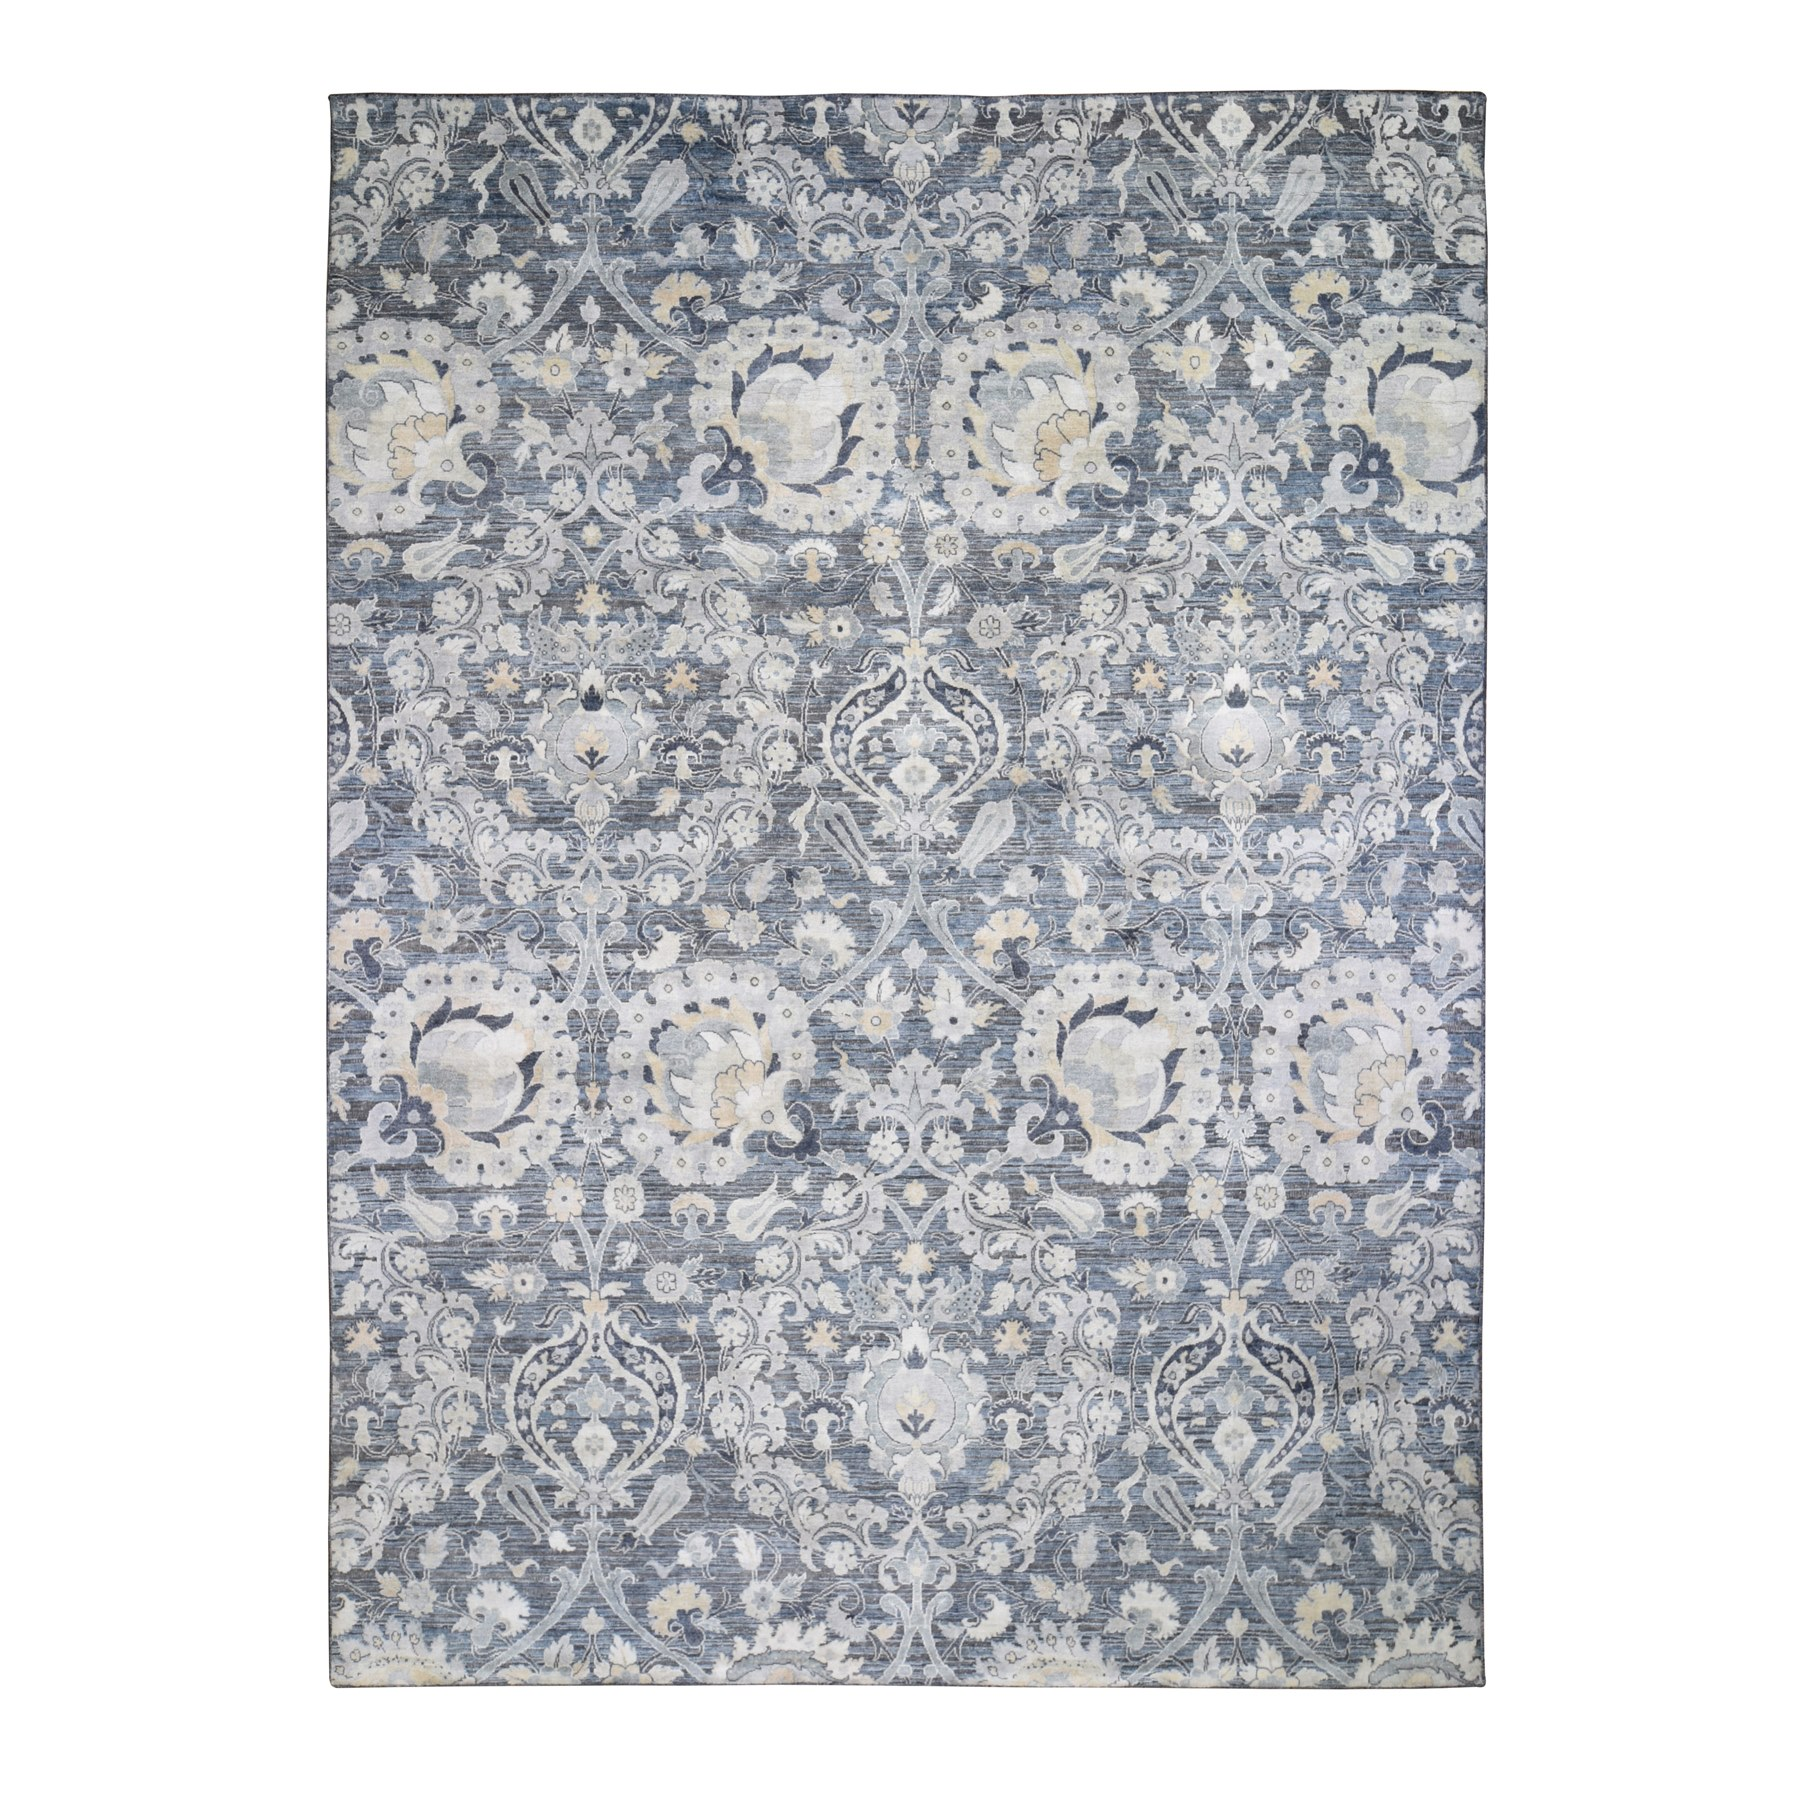 Wool and Real Silk Collection Hand Knotted Blue Rug No: 1118444